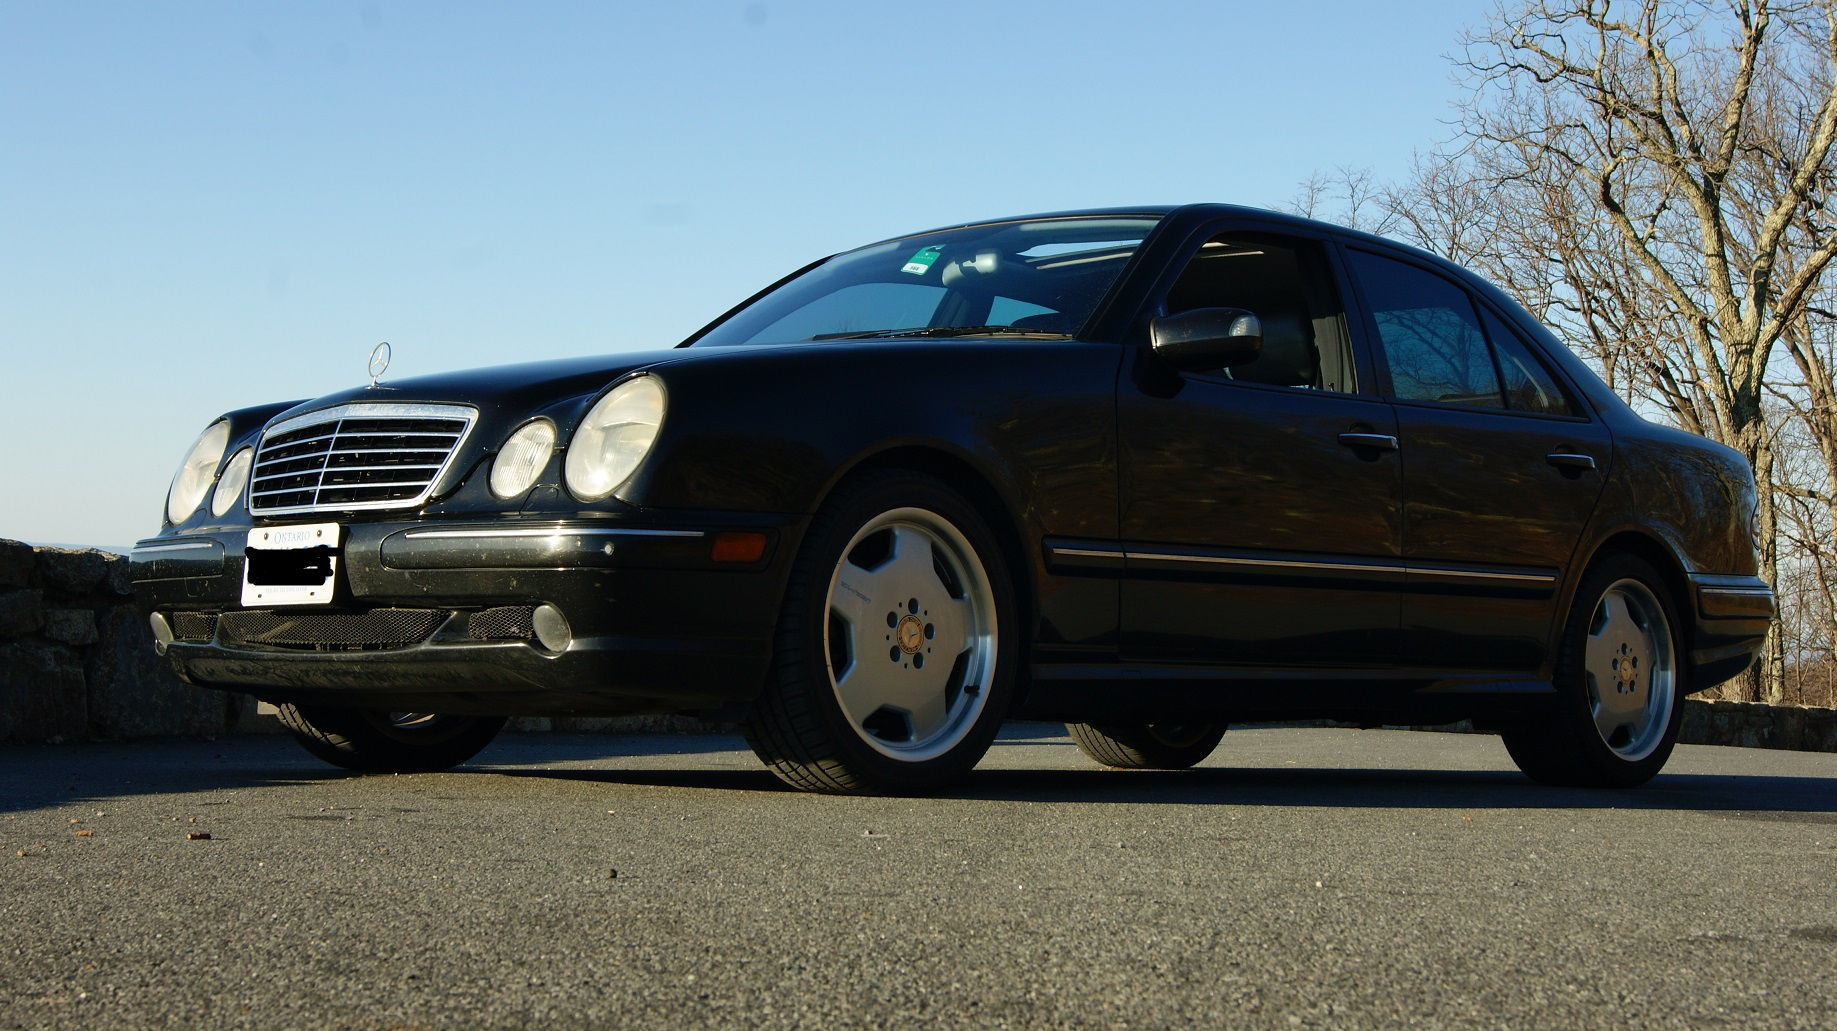 fs 2002 mercedes e55 amg w210 9000 on canada. Black Bedroom Furniture Sets. Home Design Ideas